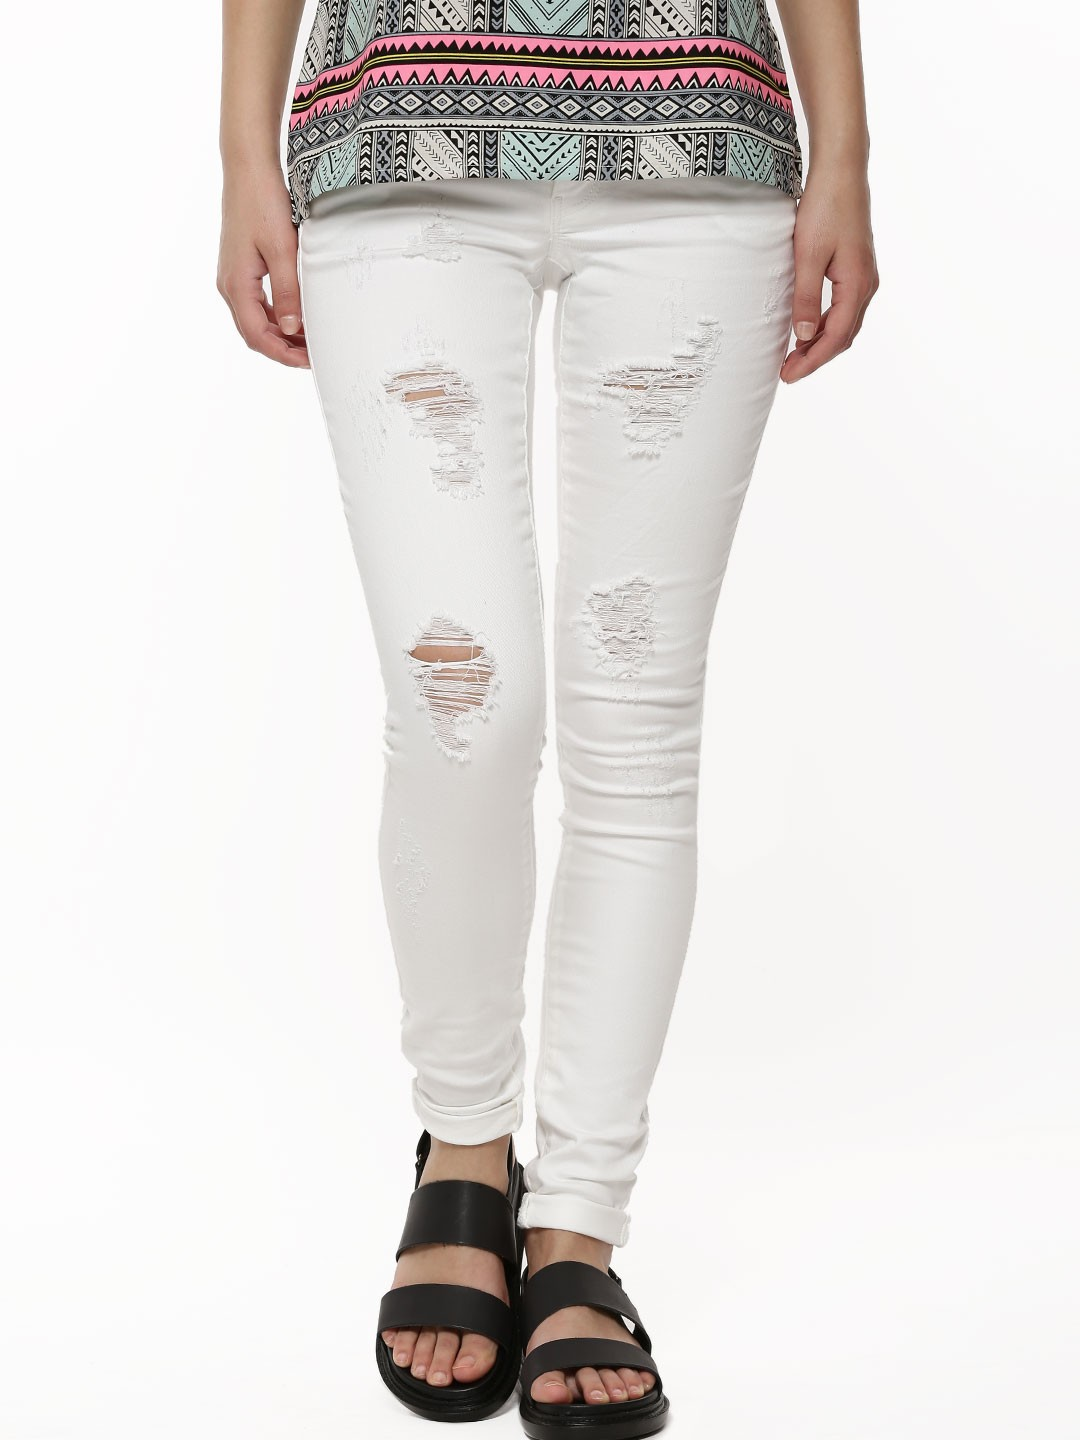 Buy ONLY Super Low Ripped Jeans For Women - Women's White Ripped ...